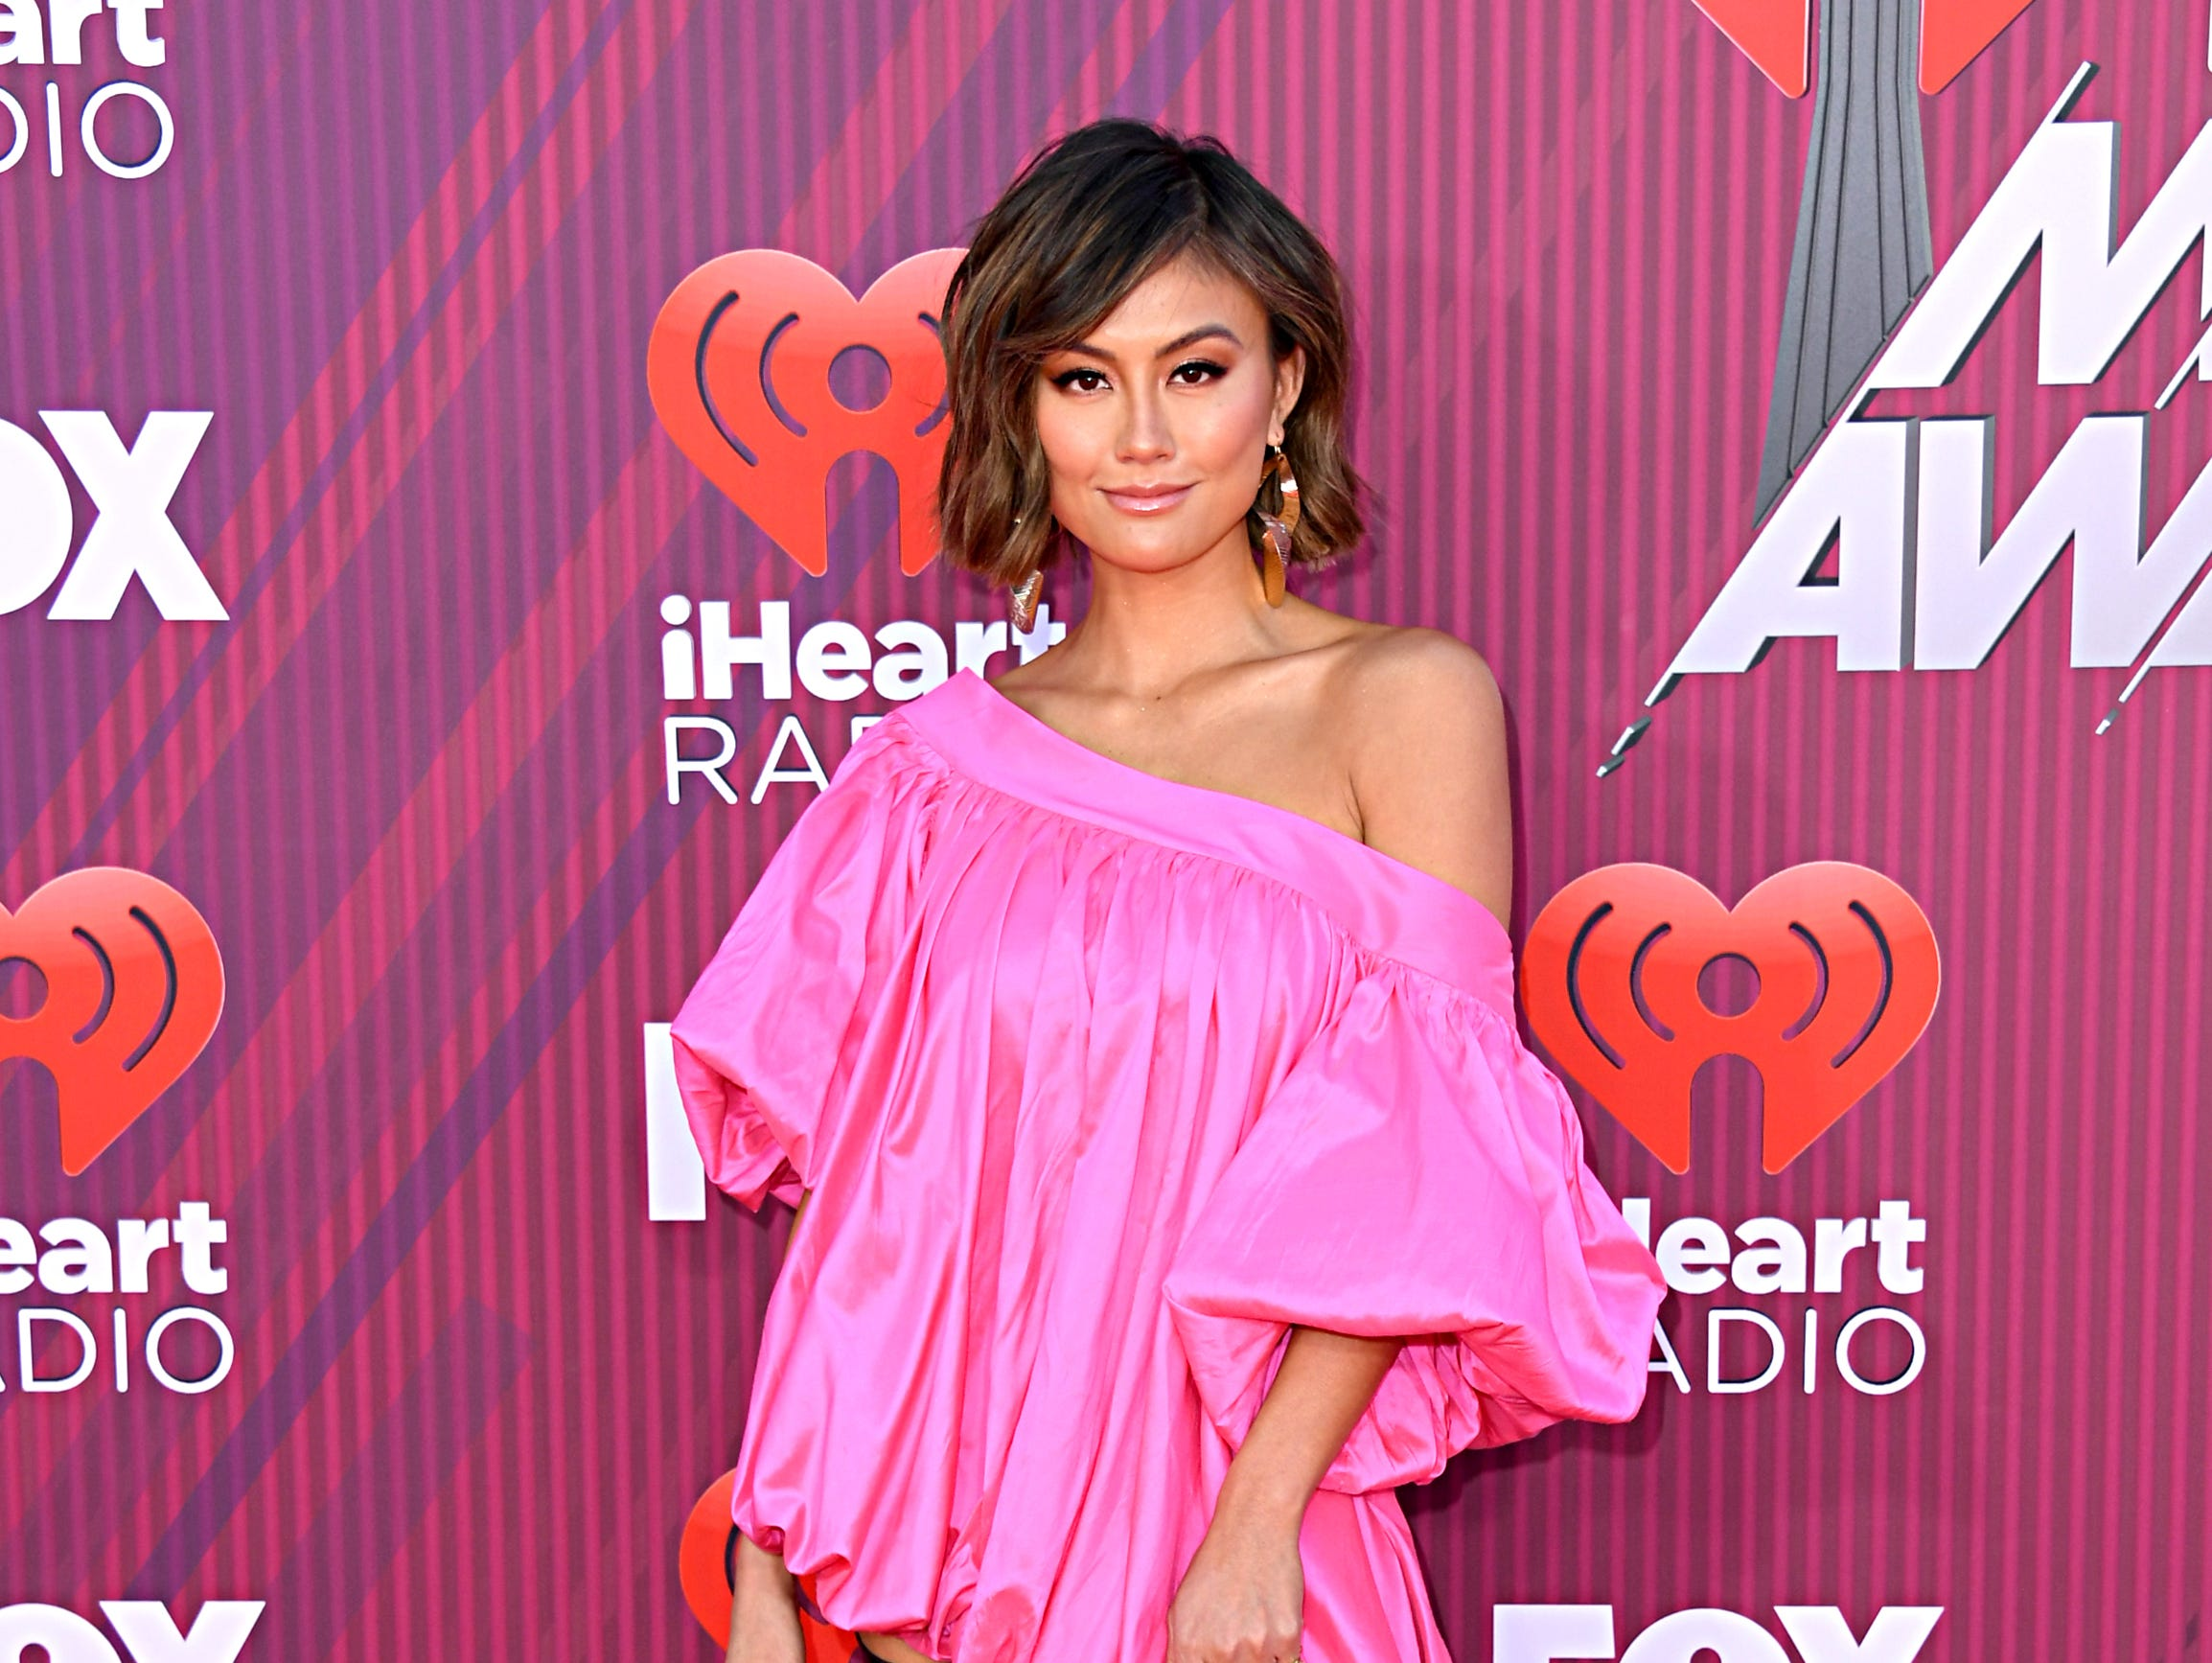 Agnez Mo arrives at the iHeartRadio Music Awards.